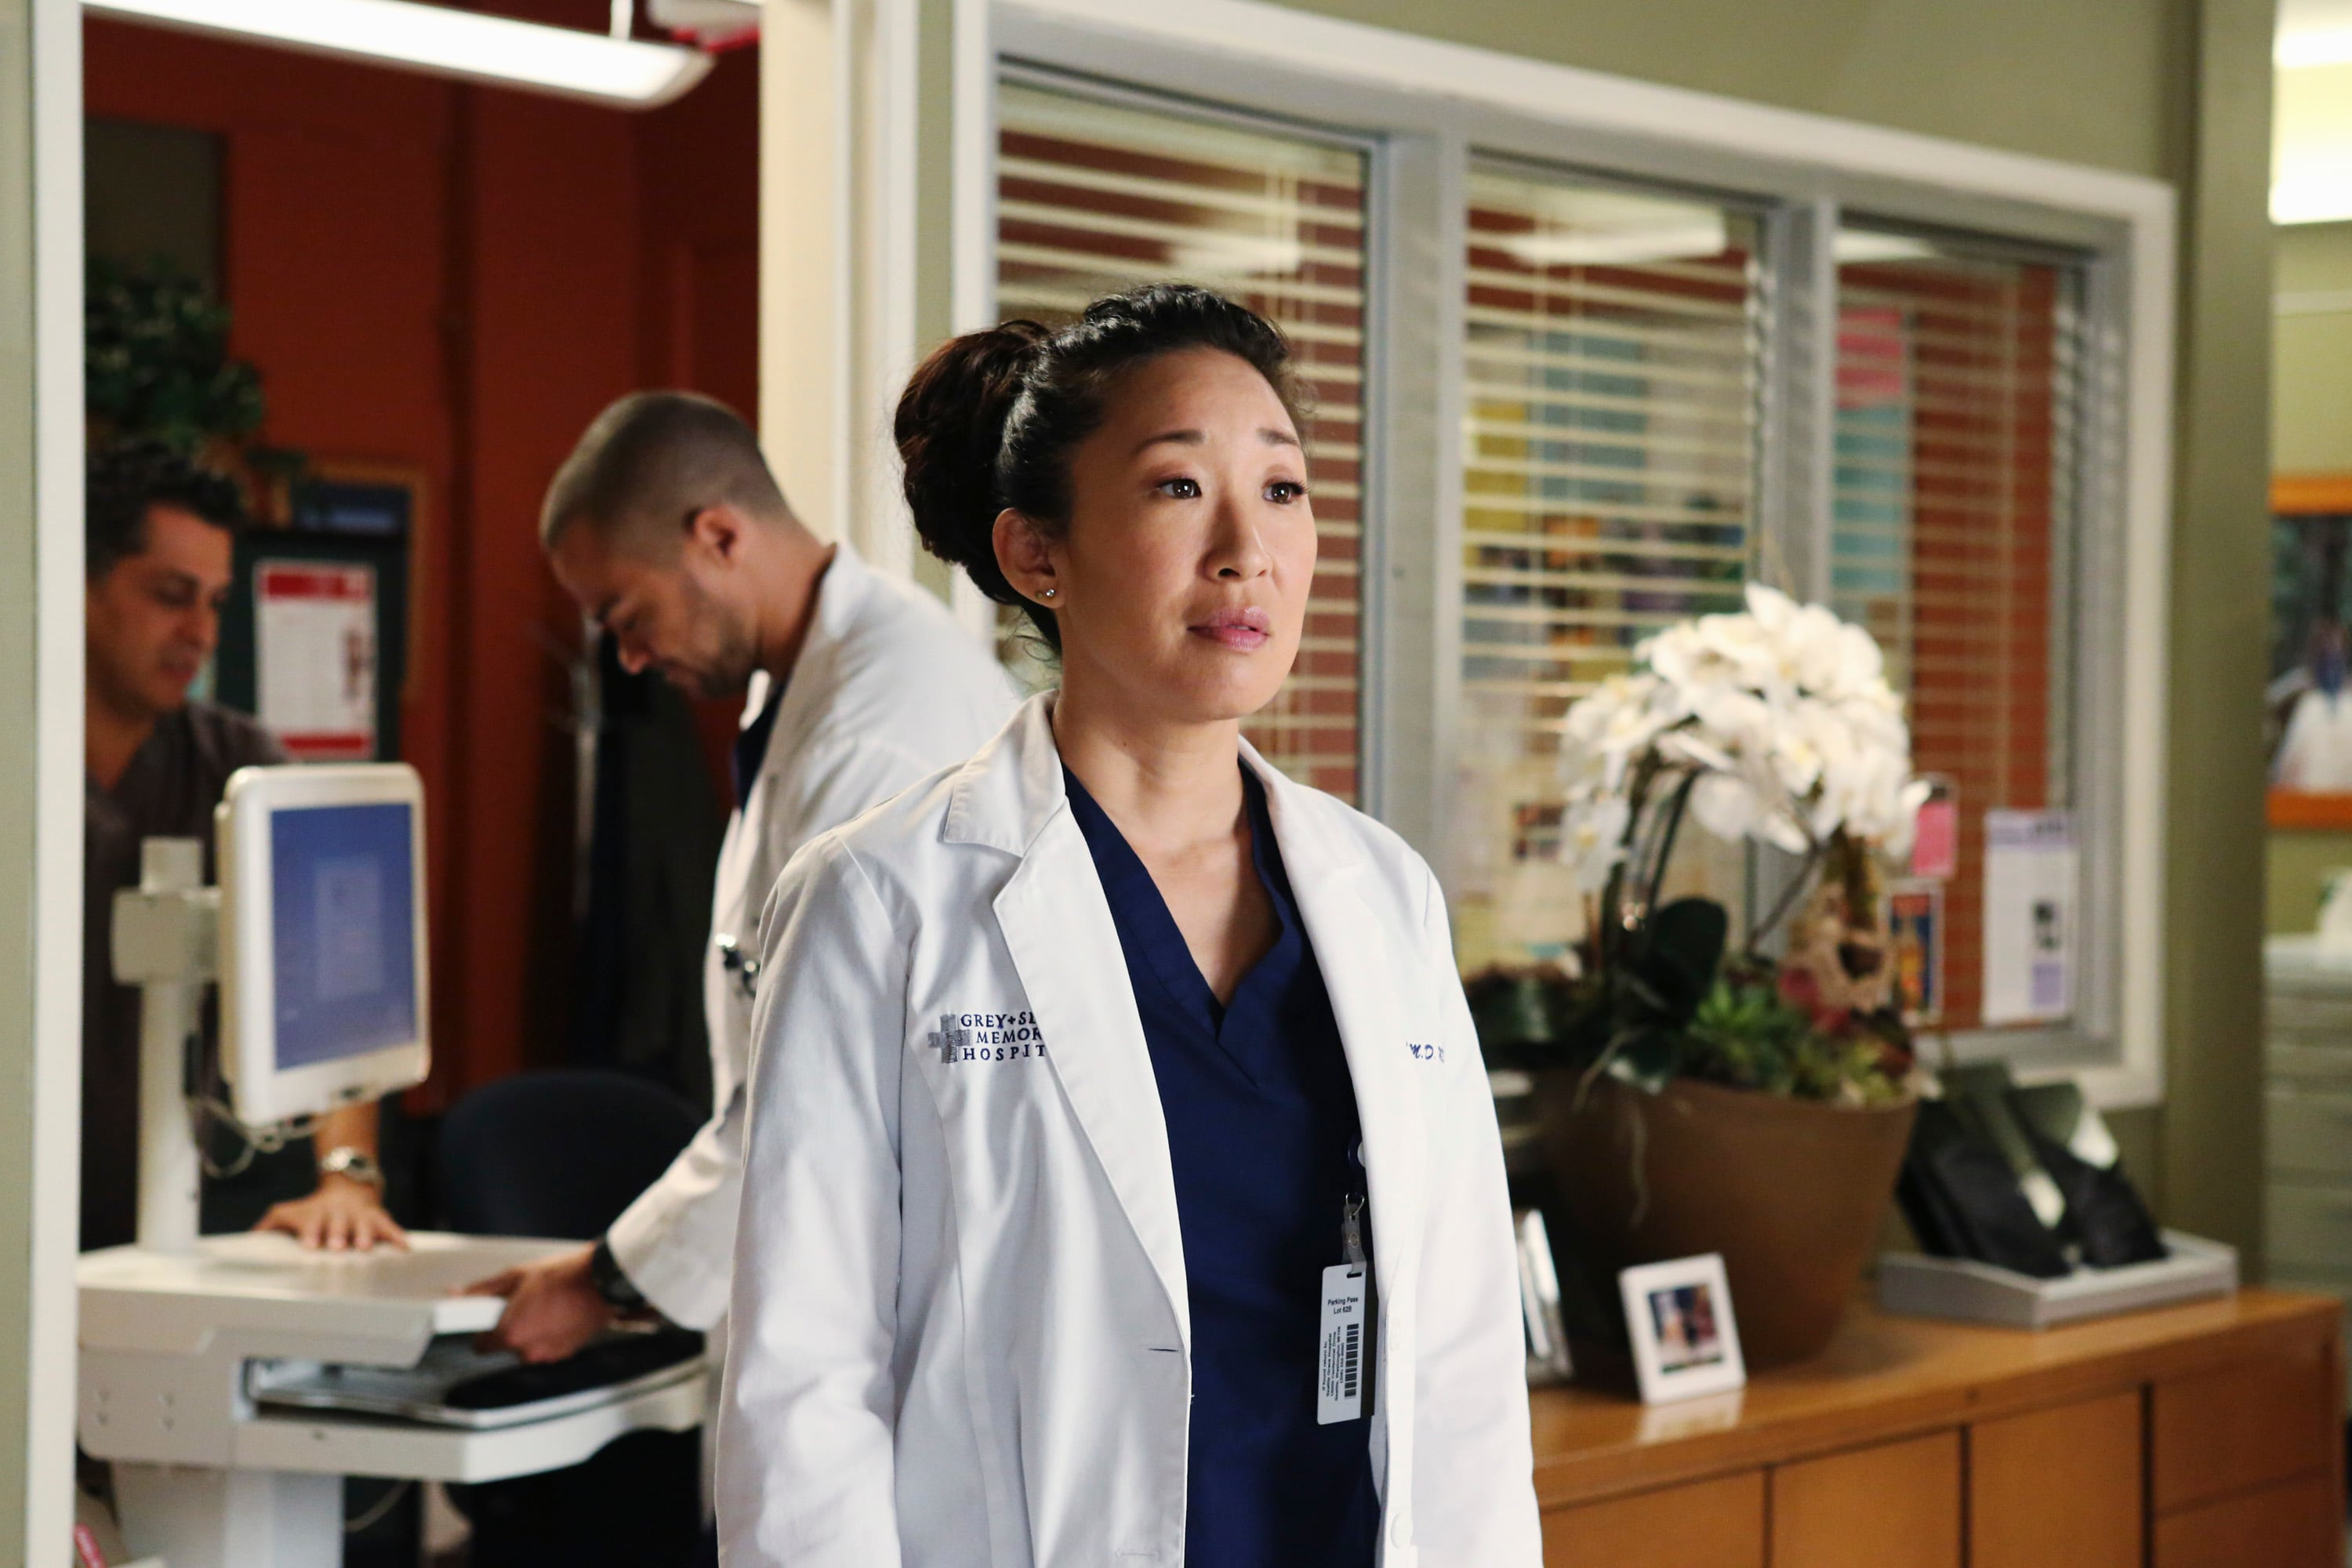 Seven things you didn't know about Sandra Oh, who played Cristina Yang on  'Grey's Anatomy' - The Washington Post